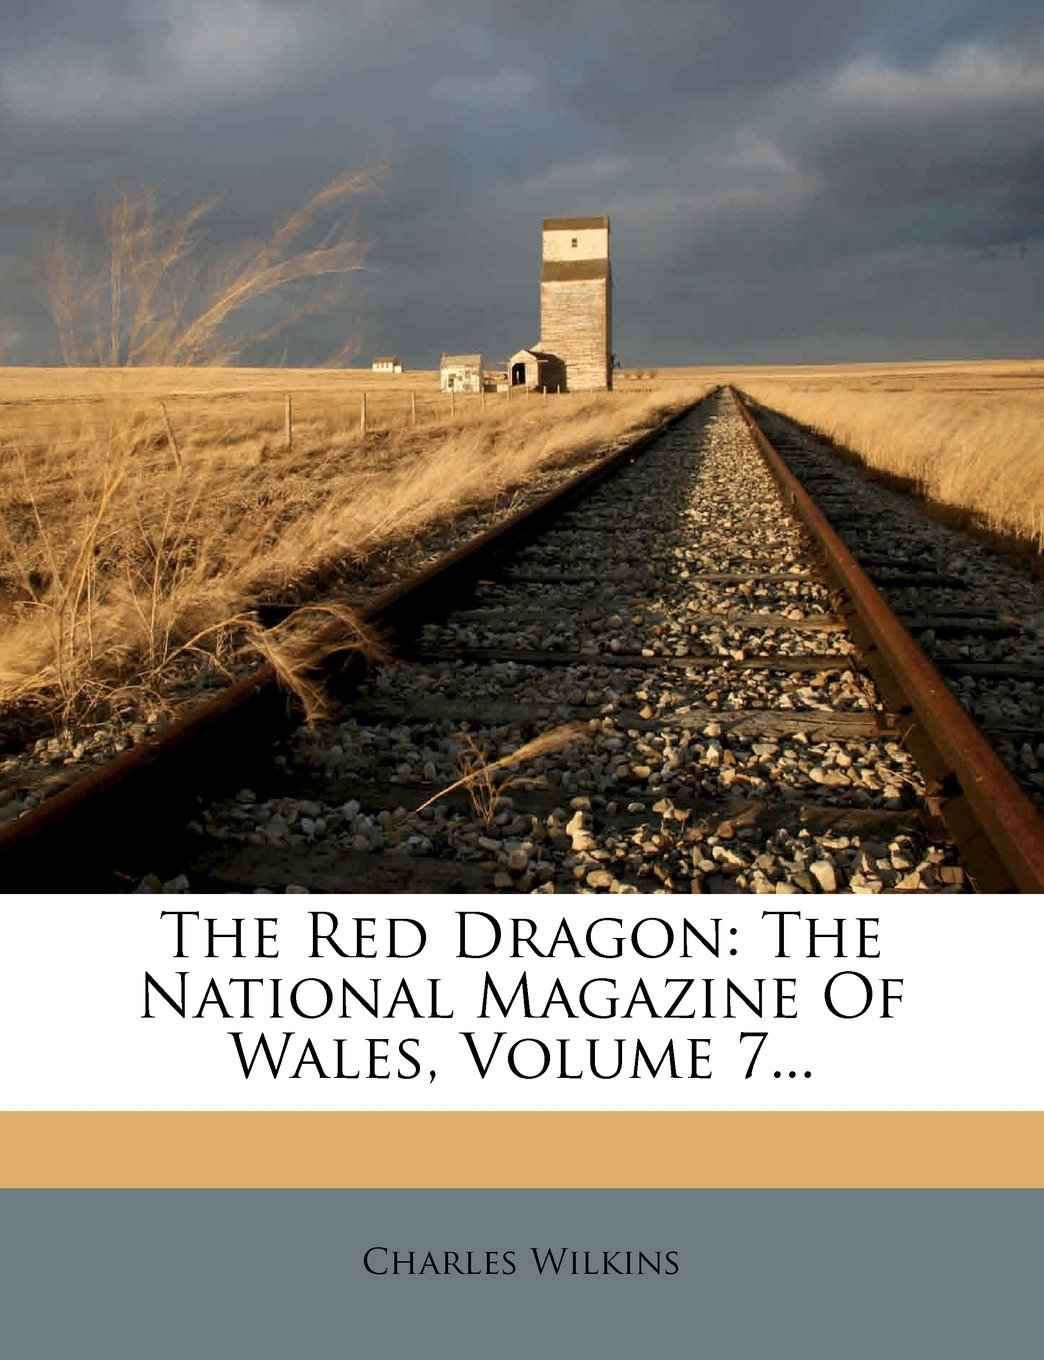 The Red Dragon: The National Magazine Of Wales, Volume 7... ebook